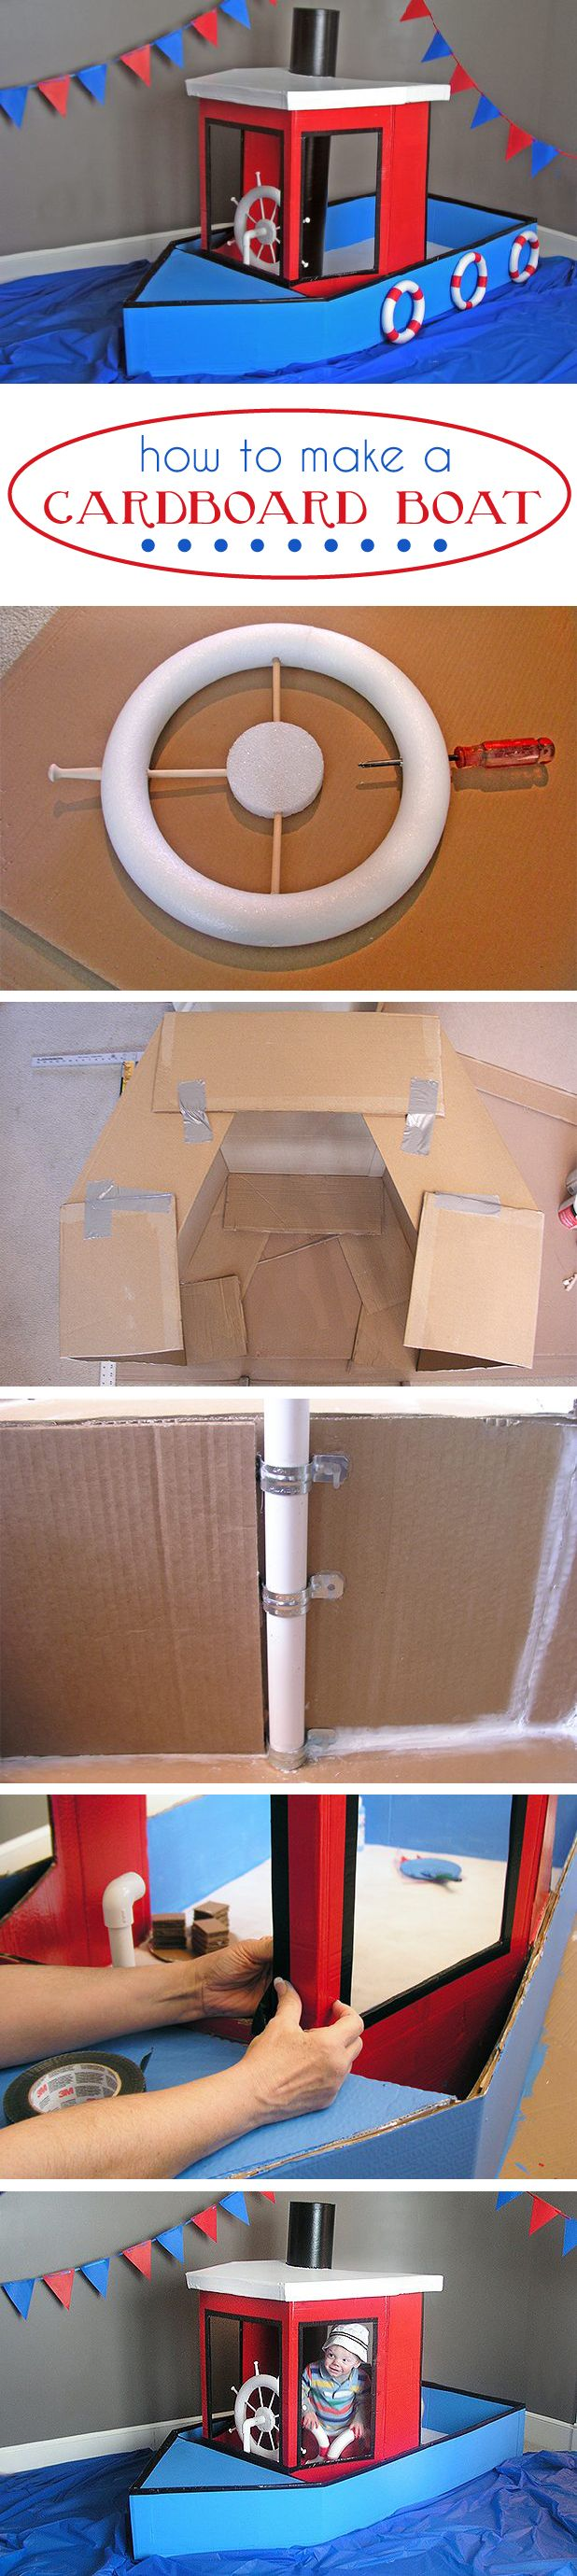 The coolest thing to happen since forts! Set your kids imagination free out on the open sea, a.k.a your living room with this DIY cardboard boat. It's cheap to make but still durable. Love this so much! http://www.ehow.com/how_4844388_cardboard-boat.html?utm_source=pinterest.com&utm_medium=referral&utm_content=inline&utm_campaign=fanpage